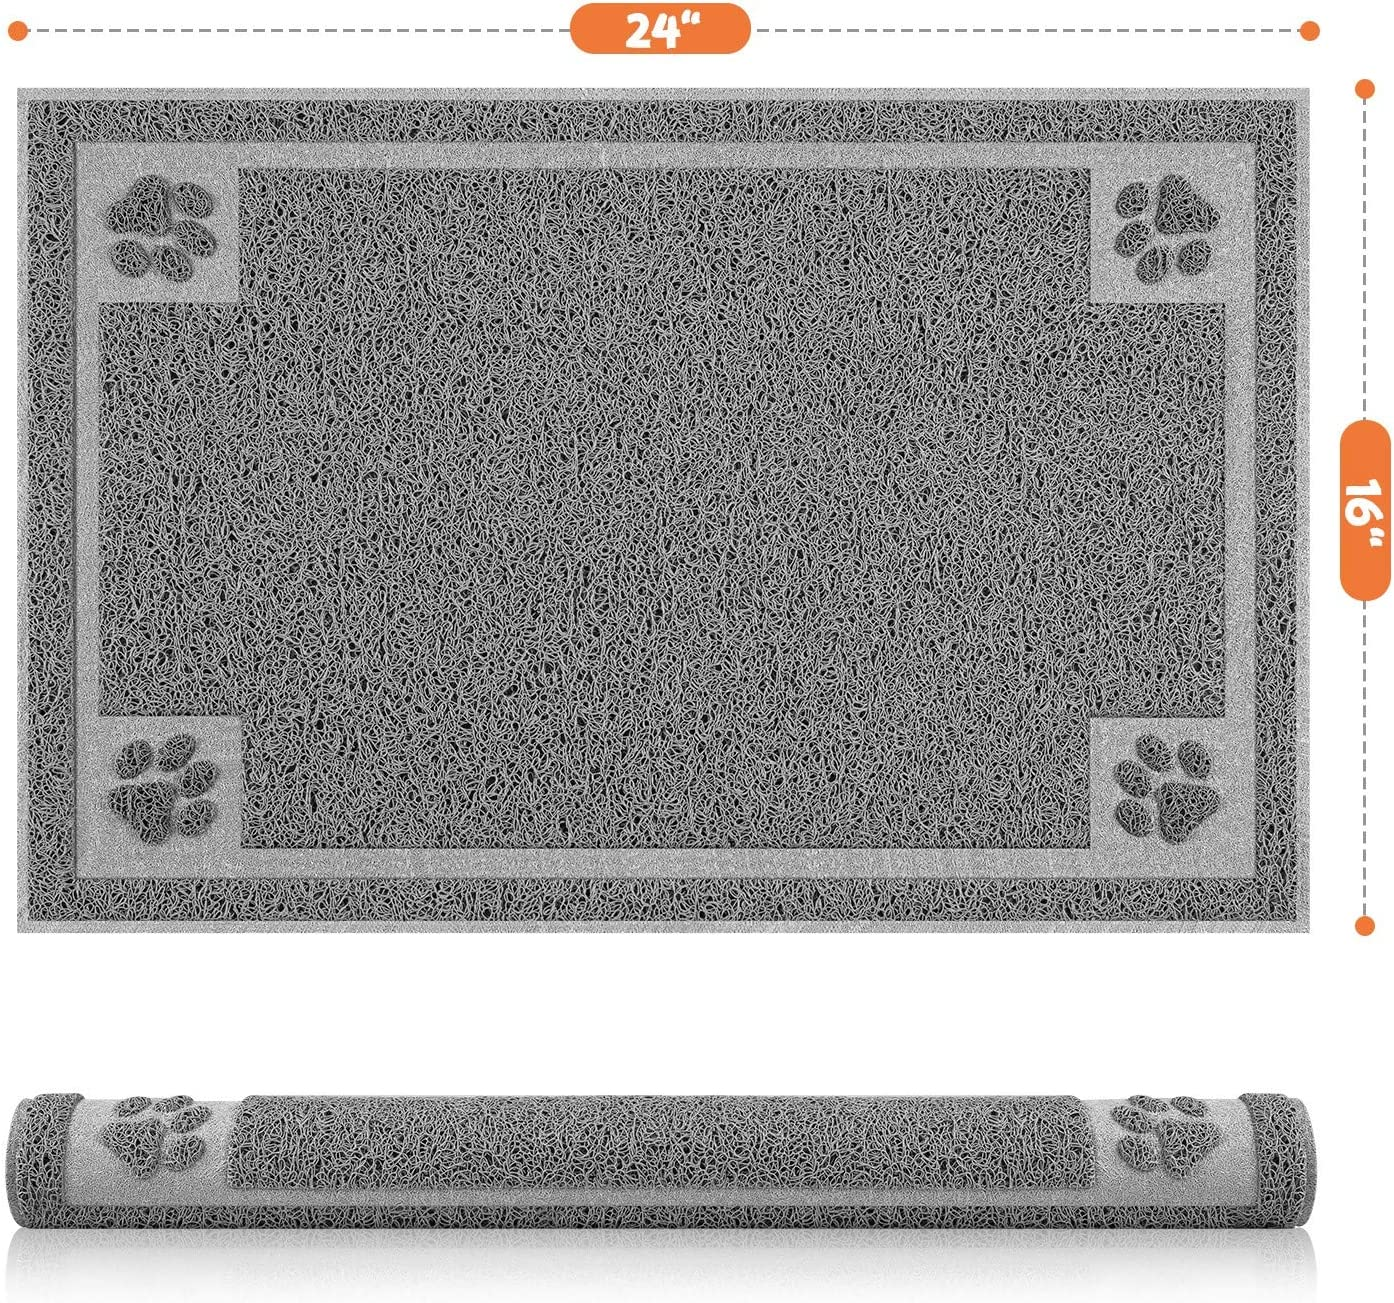 Tosenway Pet Feeding Mat for Food and Water Flexible and Waterproof Dog Food Mat for Small Dogs and Cats, 24